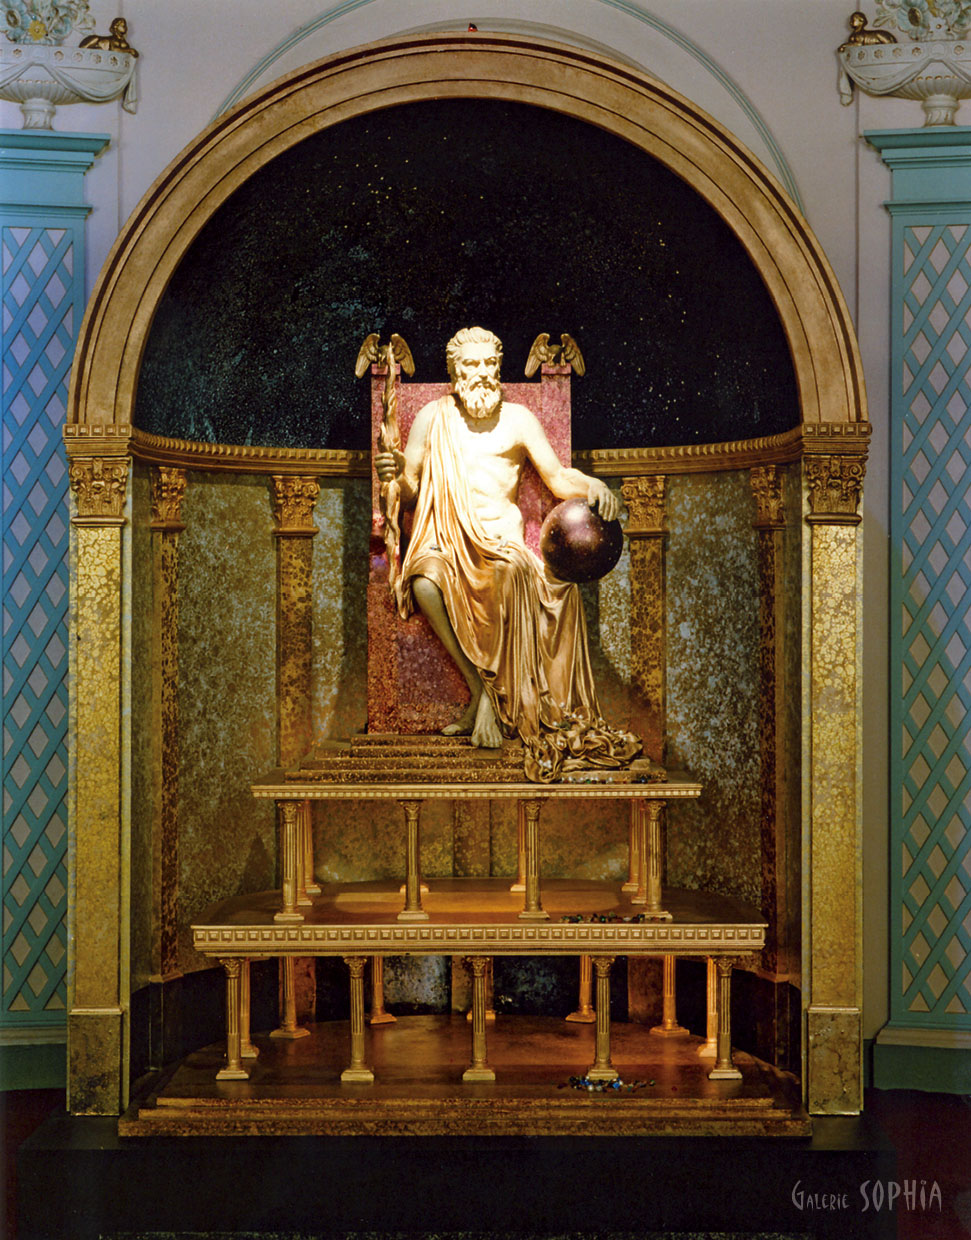 The 7 Wonders of the World – The Statue of Zeus at Olympia